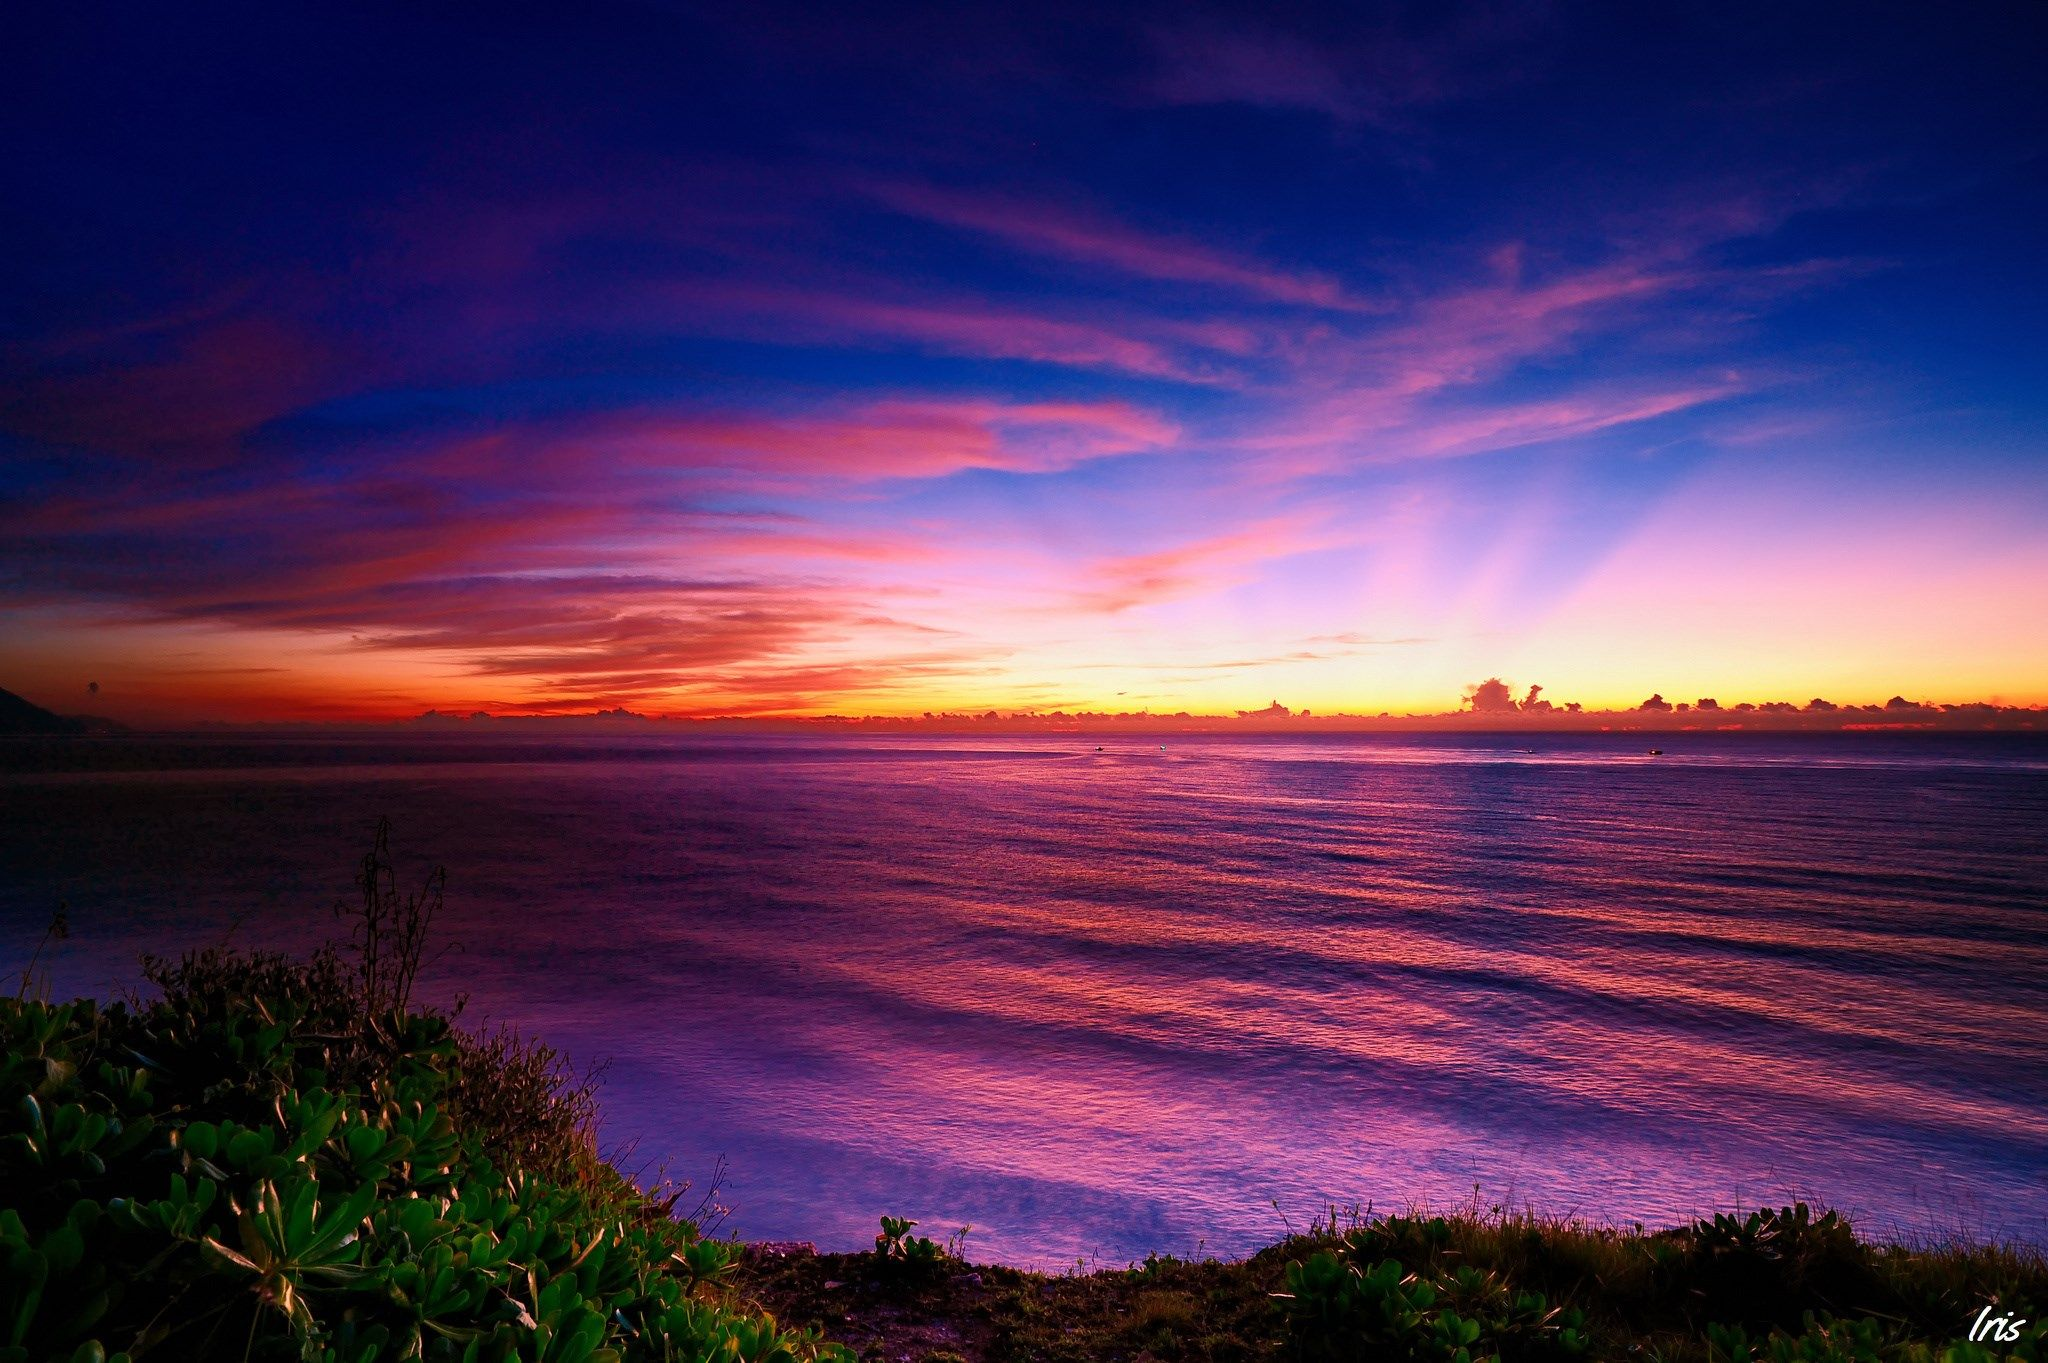 Free Sunset Screensavers And Wallpaper: 2048x1363 Free Screensaver Wallpapers For Sunset